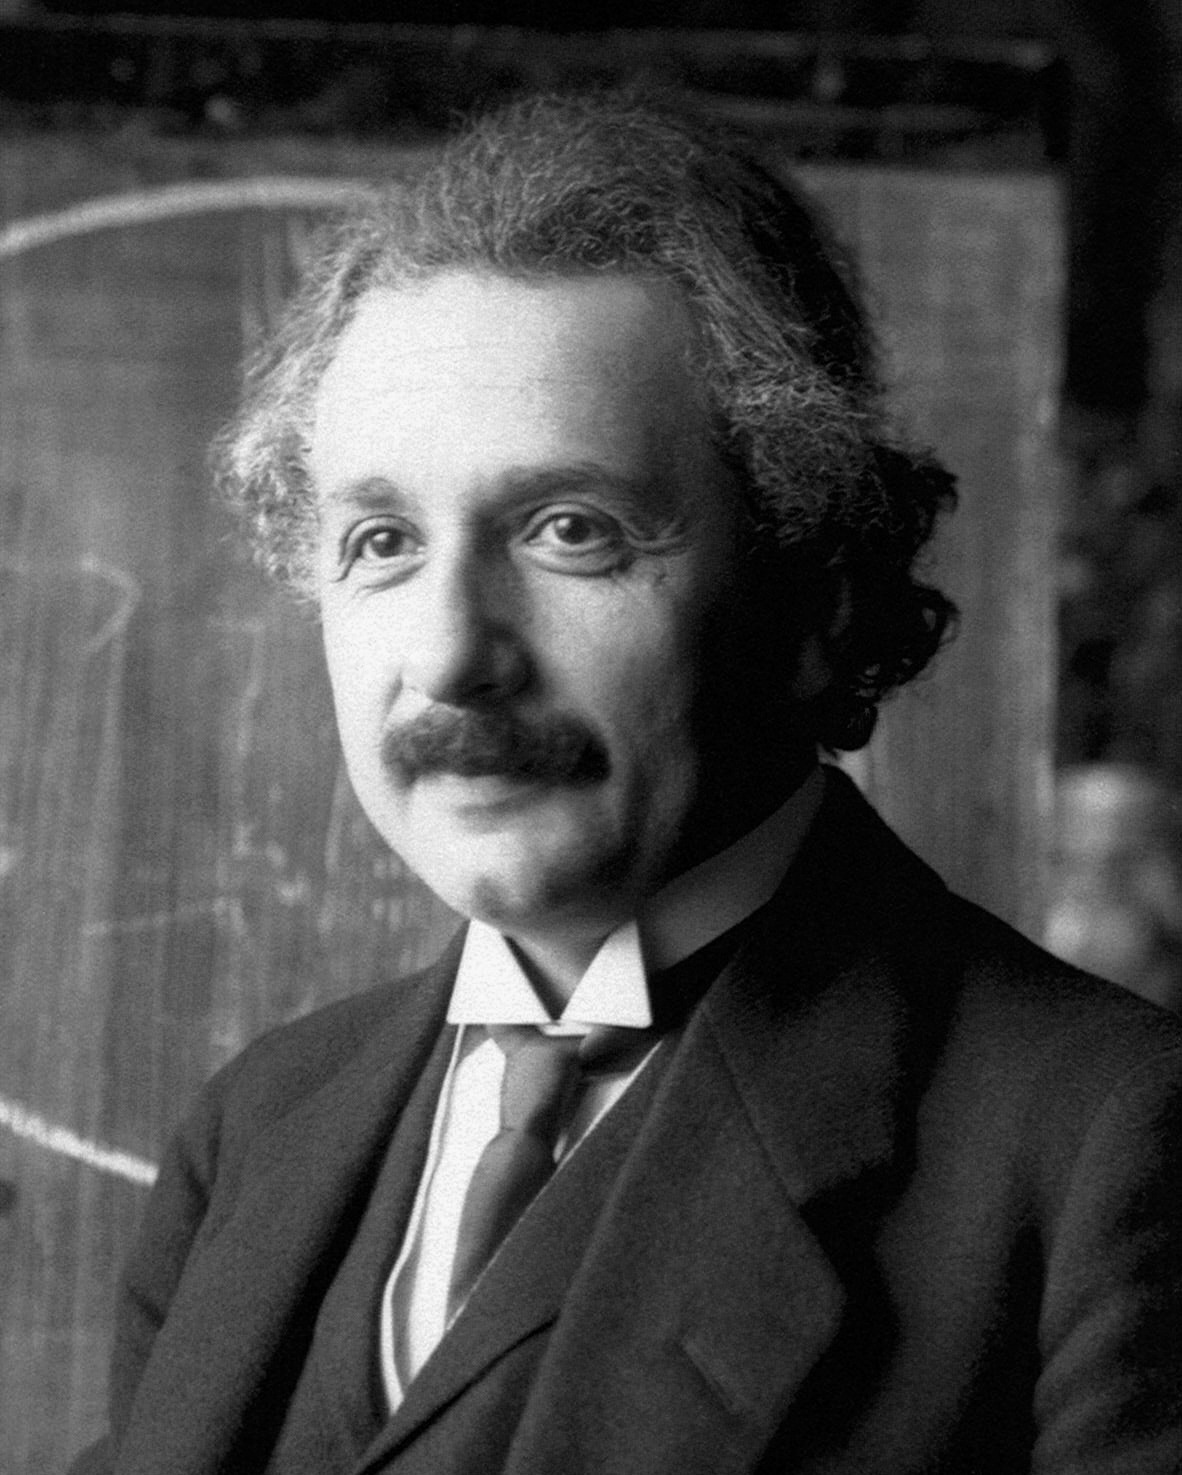 Albert Einstein - Image via Wikipedia